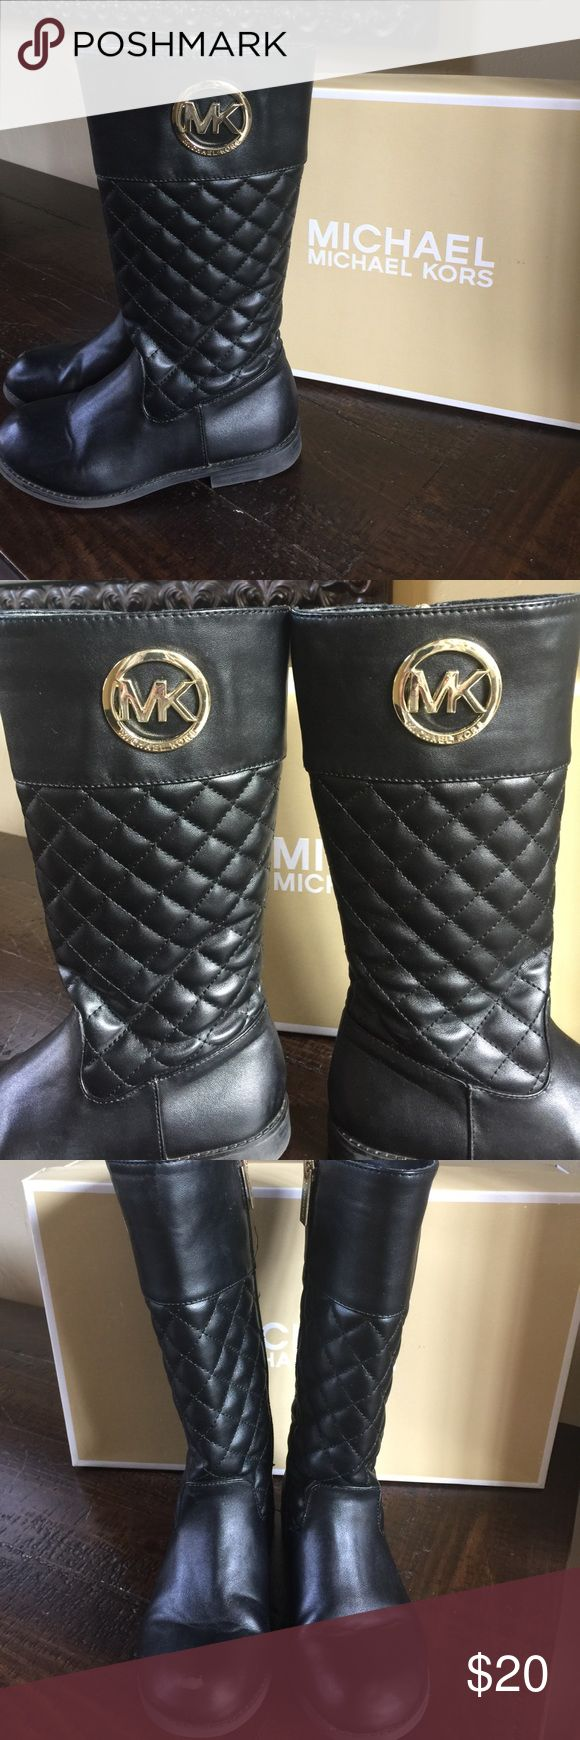 """Micheal Kors girls black """"Emma"""" quilted tall boots Girls """"Emma Lux"""" tall quilted boots. Excellent condition with the exception of a scuff in toe of right boot. Can easily cover with shoe polish. See photo. Gold MK on side and gold zip. Price is firm. Comes with box. Michael Kors Shoes Boots"""